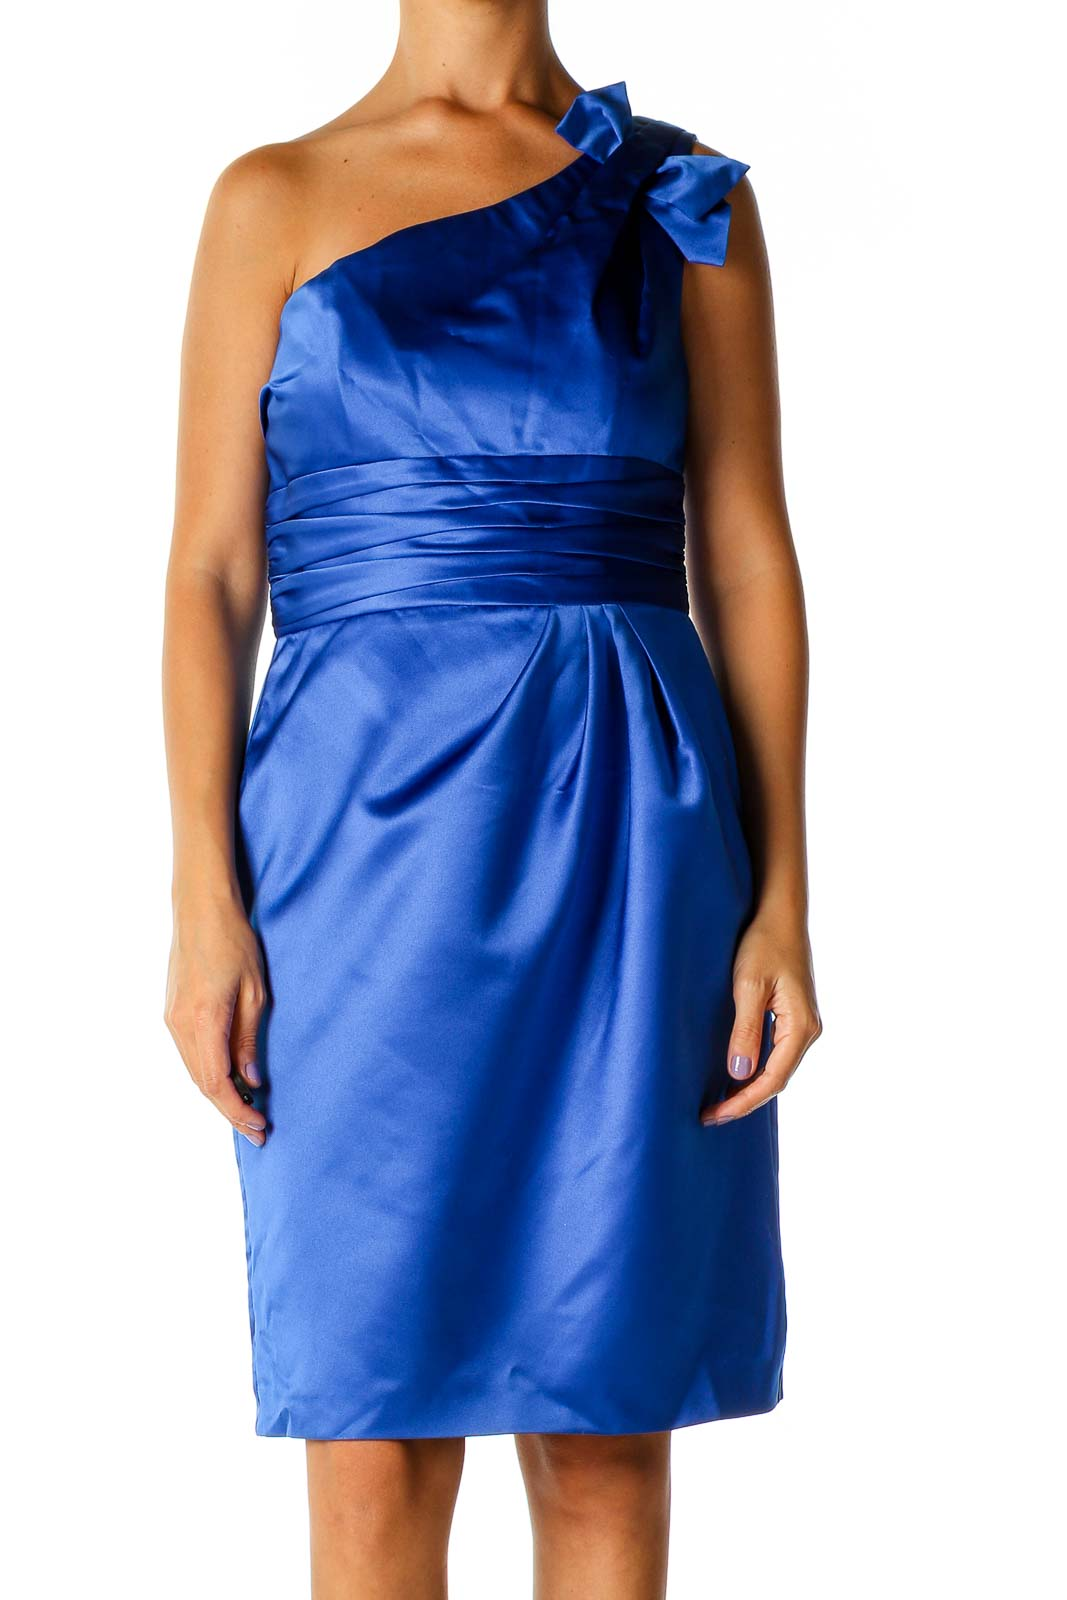 Blue Solid Chic Fit & Flare Dress Front